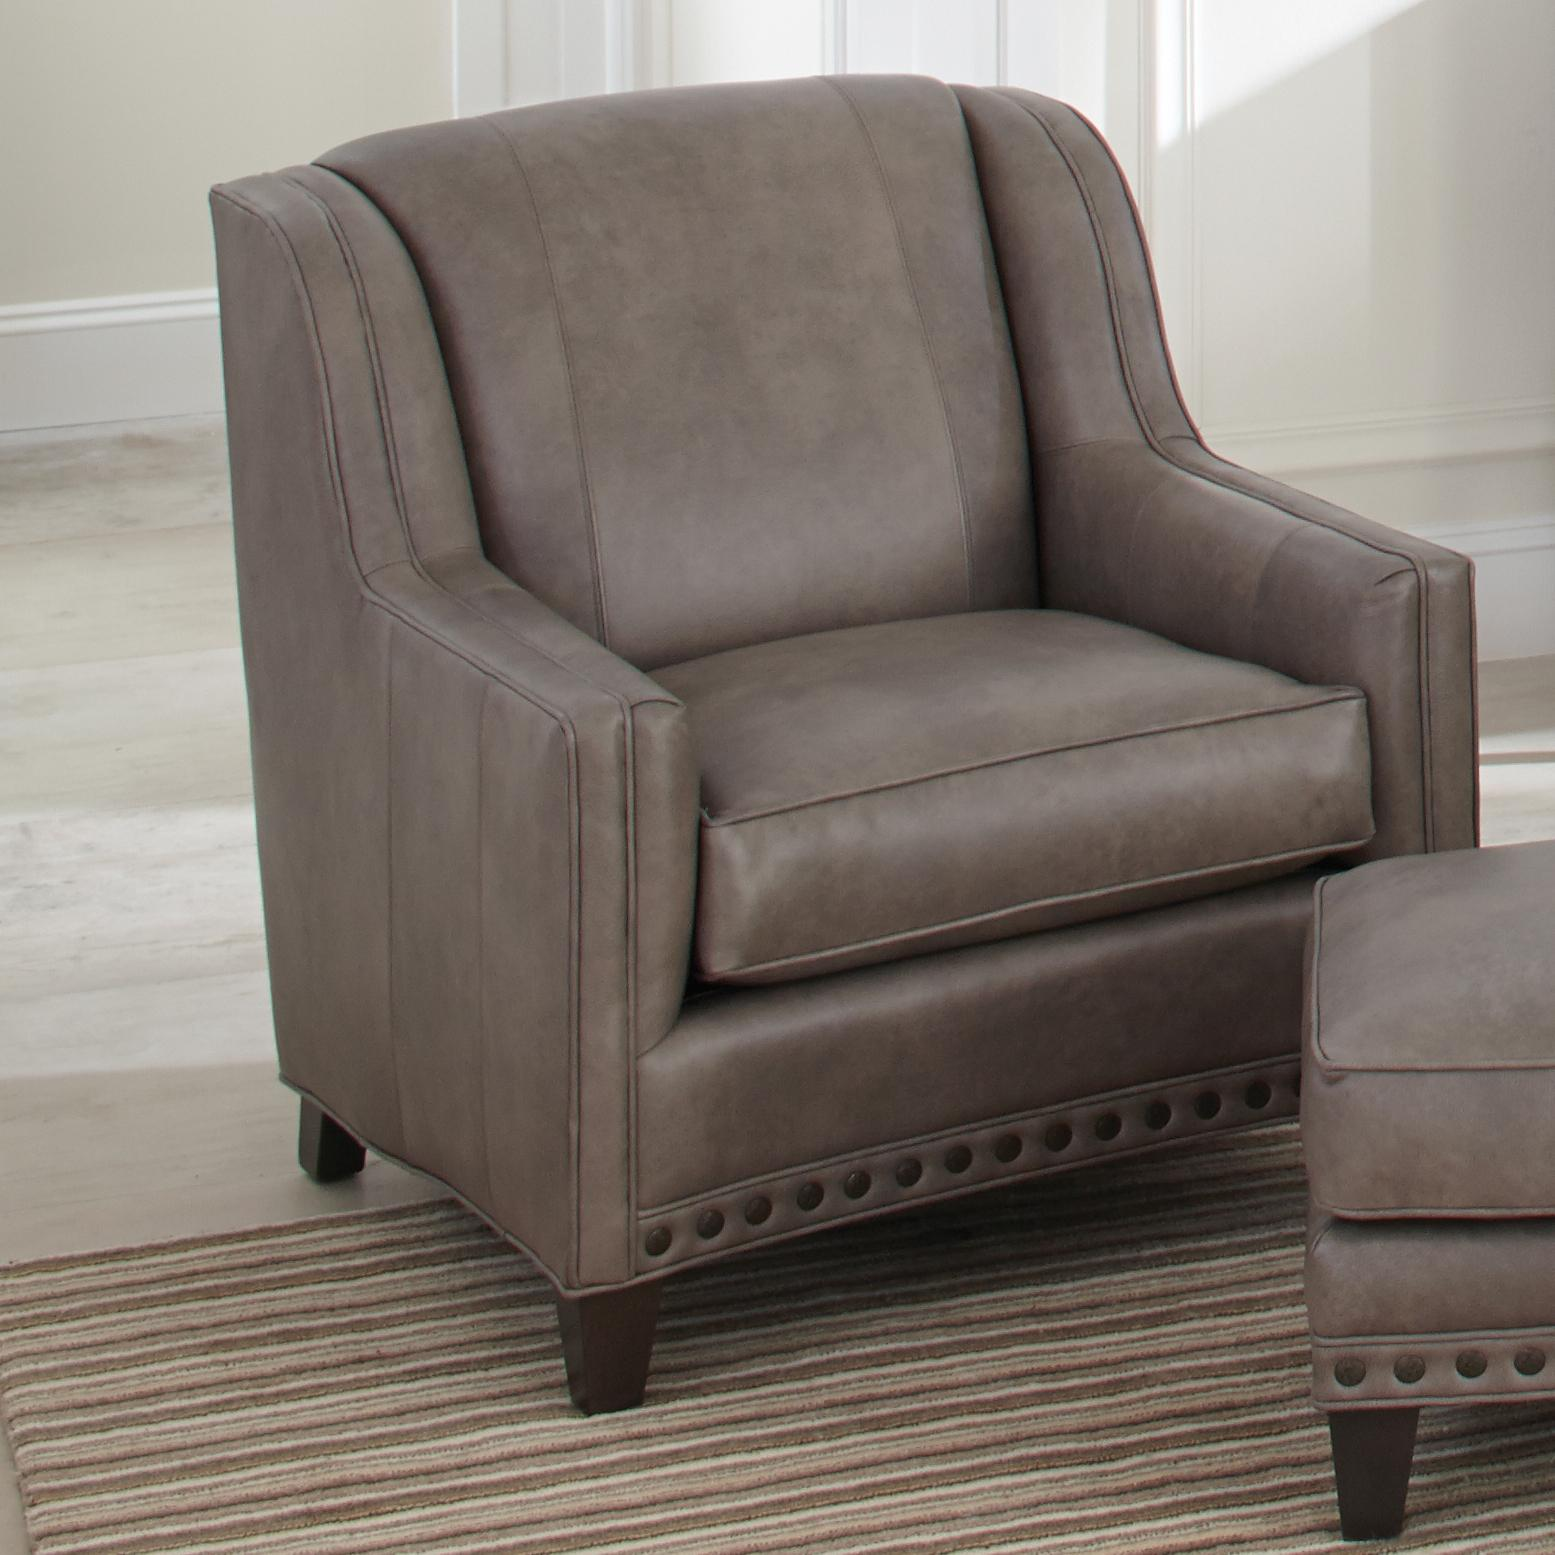 227 Upholstered Chair by Smith Brothers at Miller Home